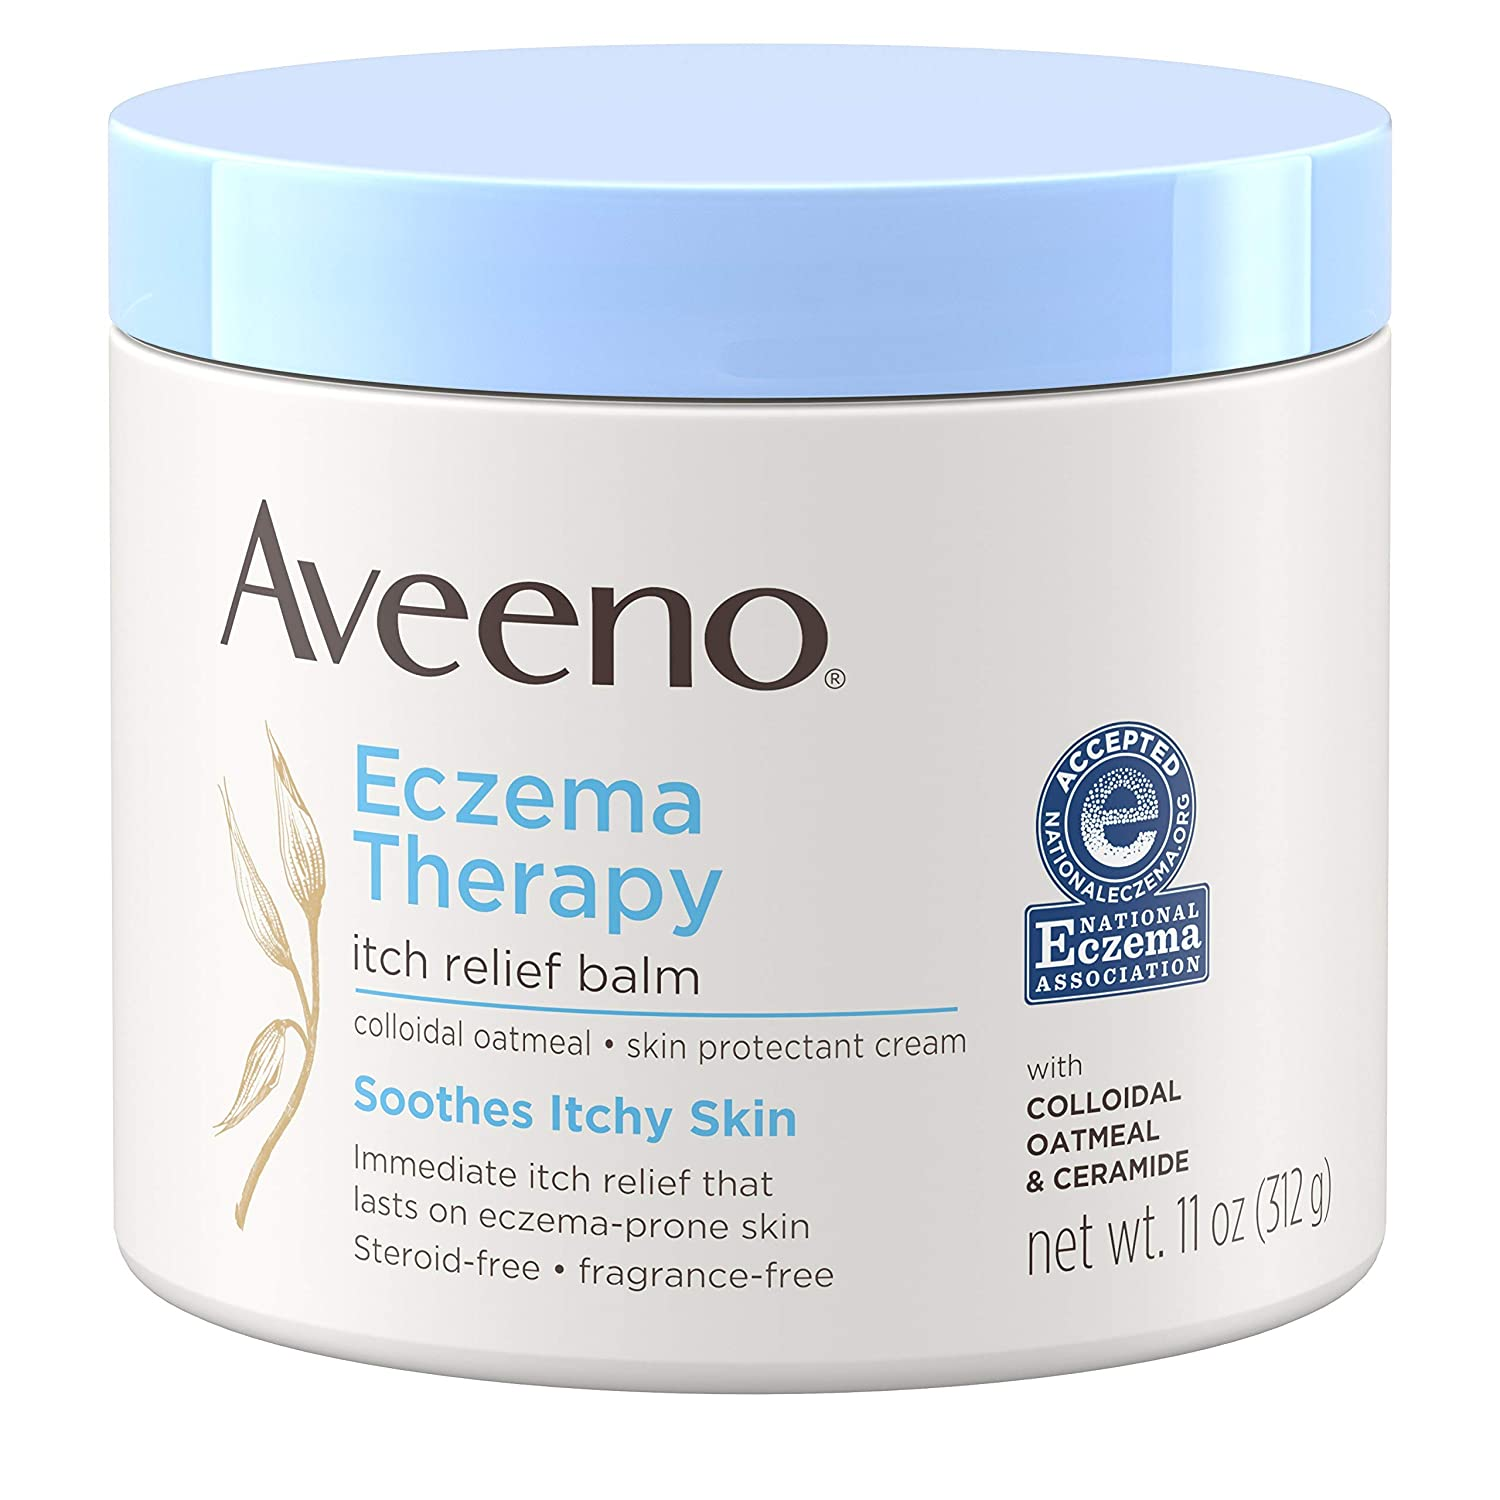 Image result for Aveeno Eczema Therapy Itch Relief Balm